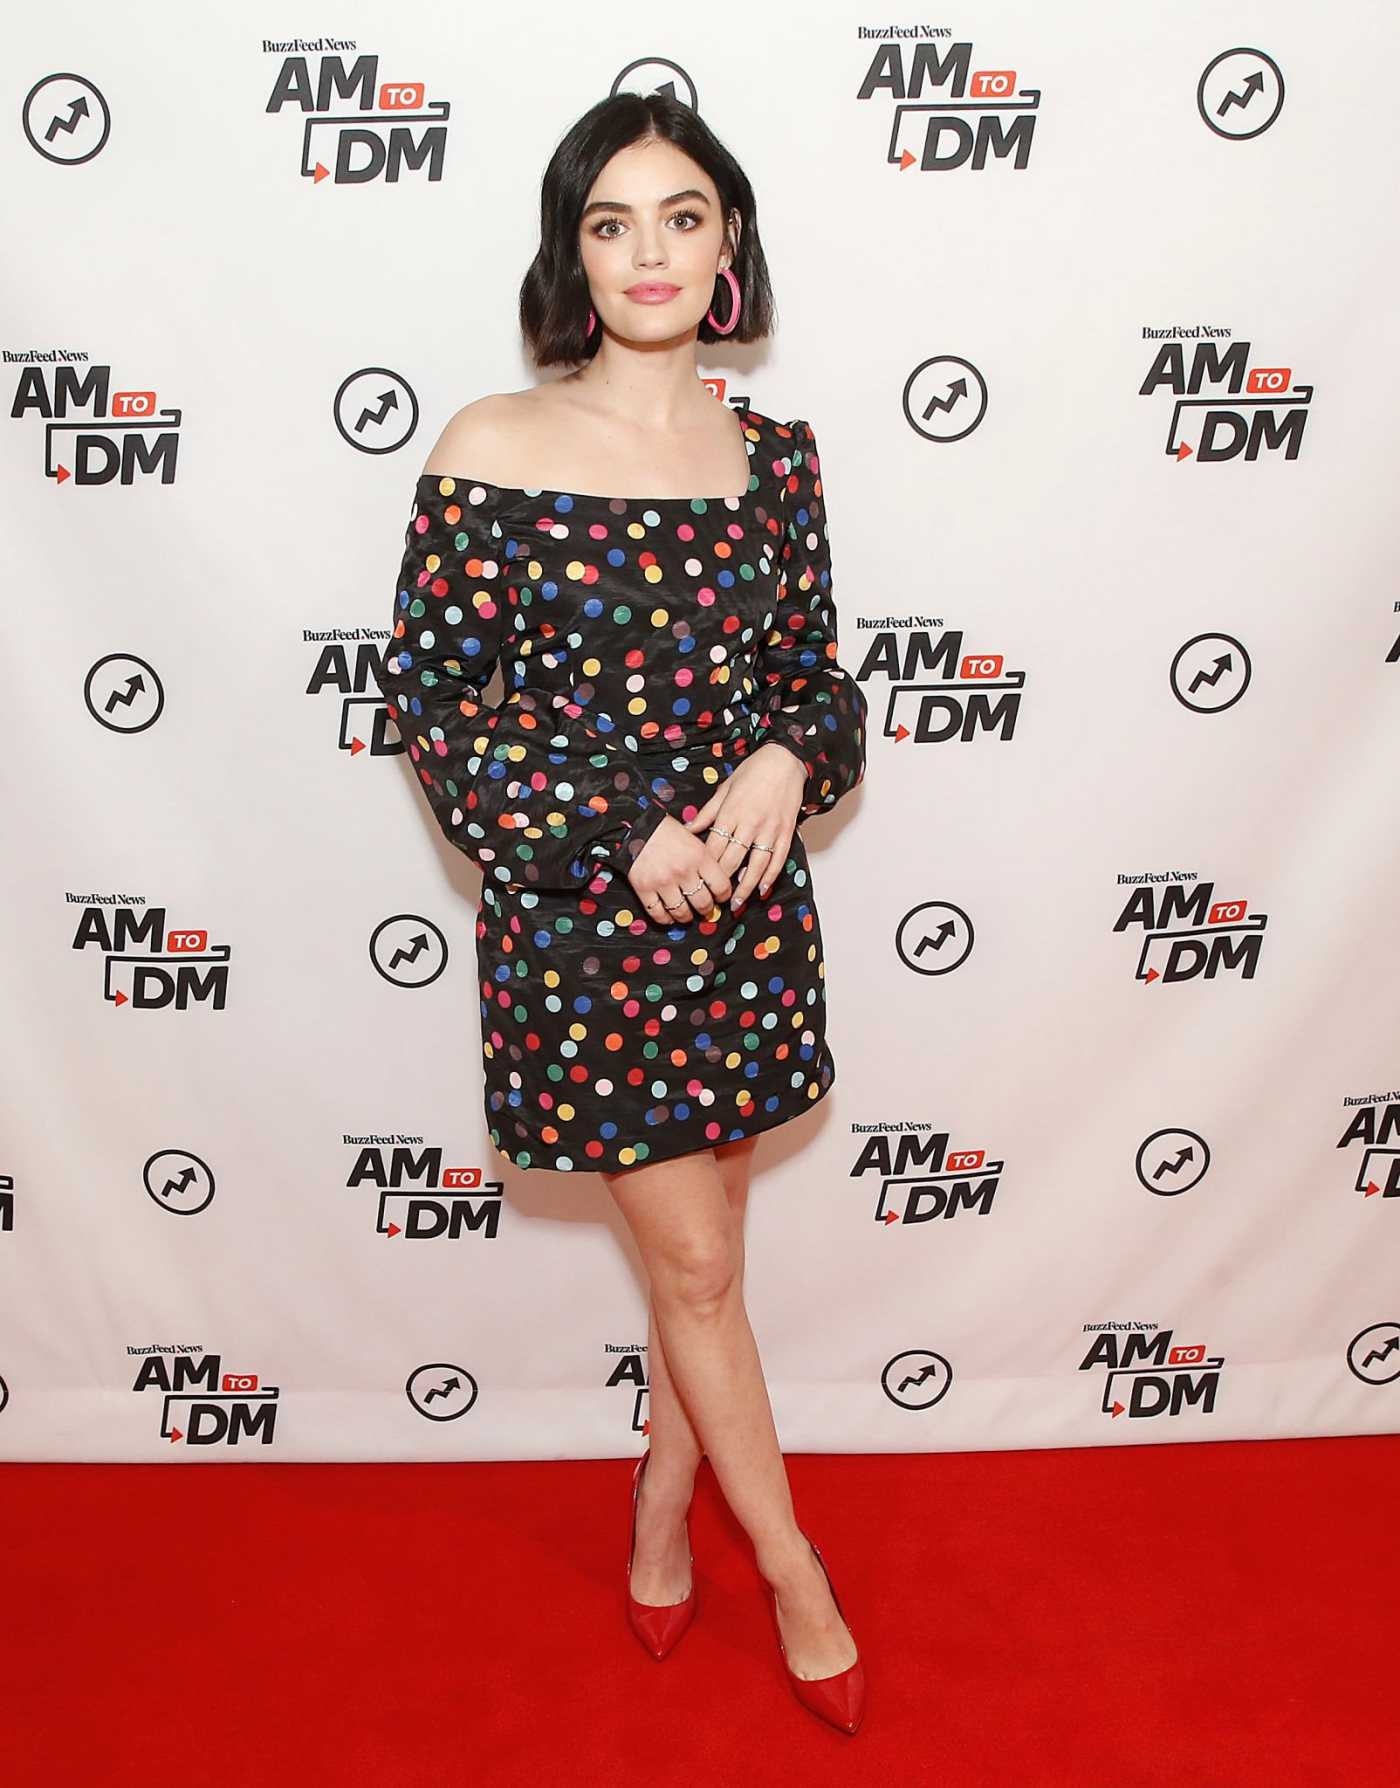 Lucy Hale Visits Buzzfeed's AM to DM in New York 02/13/2020